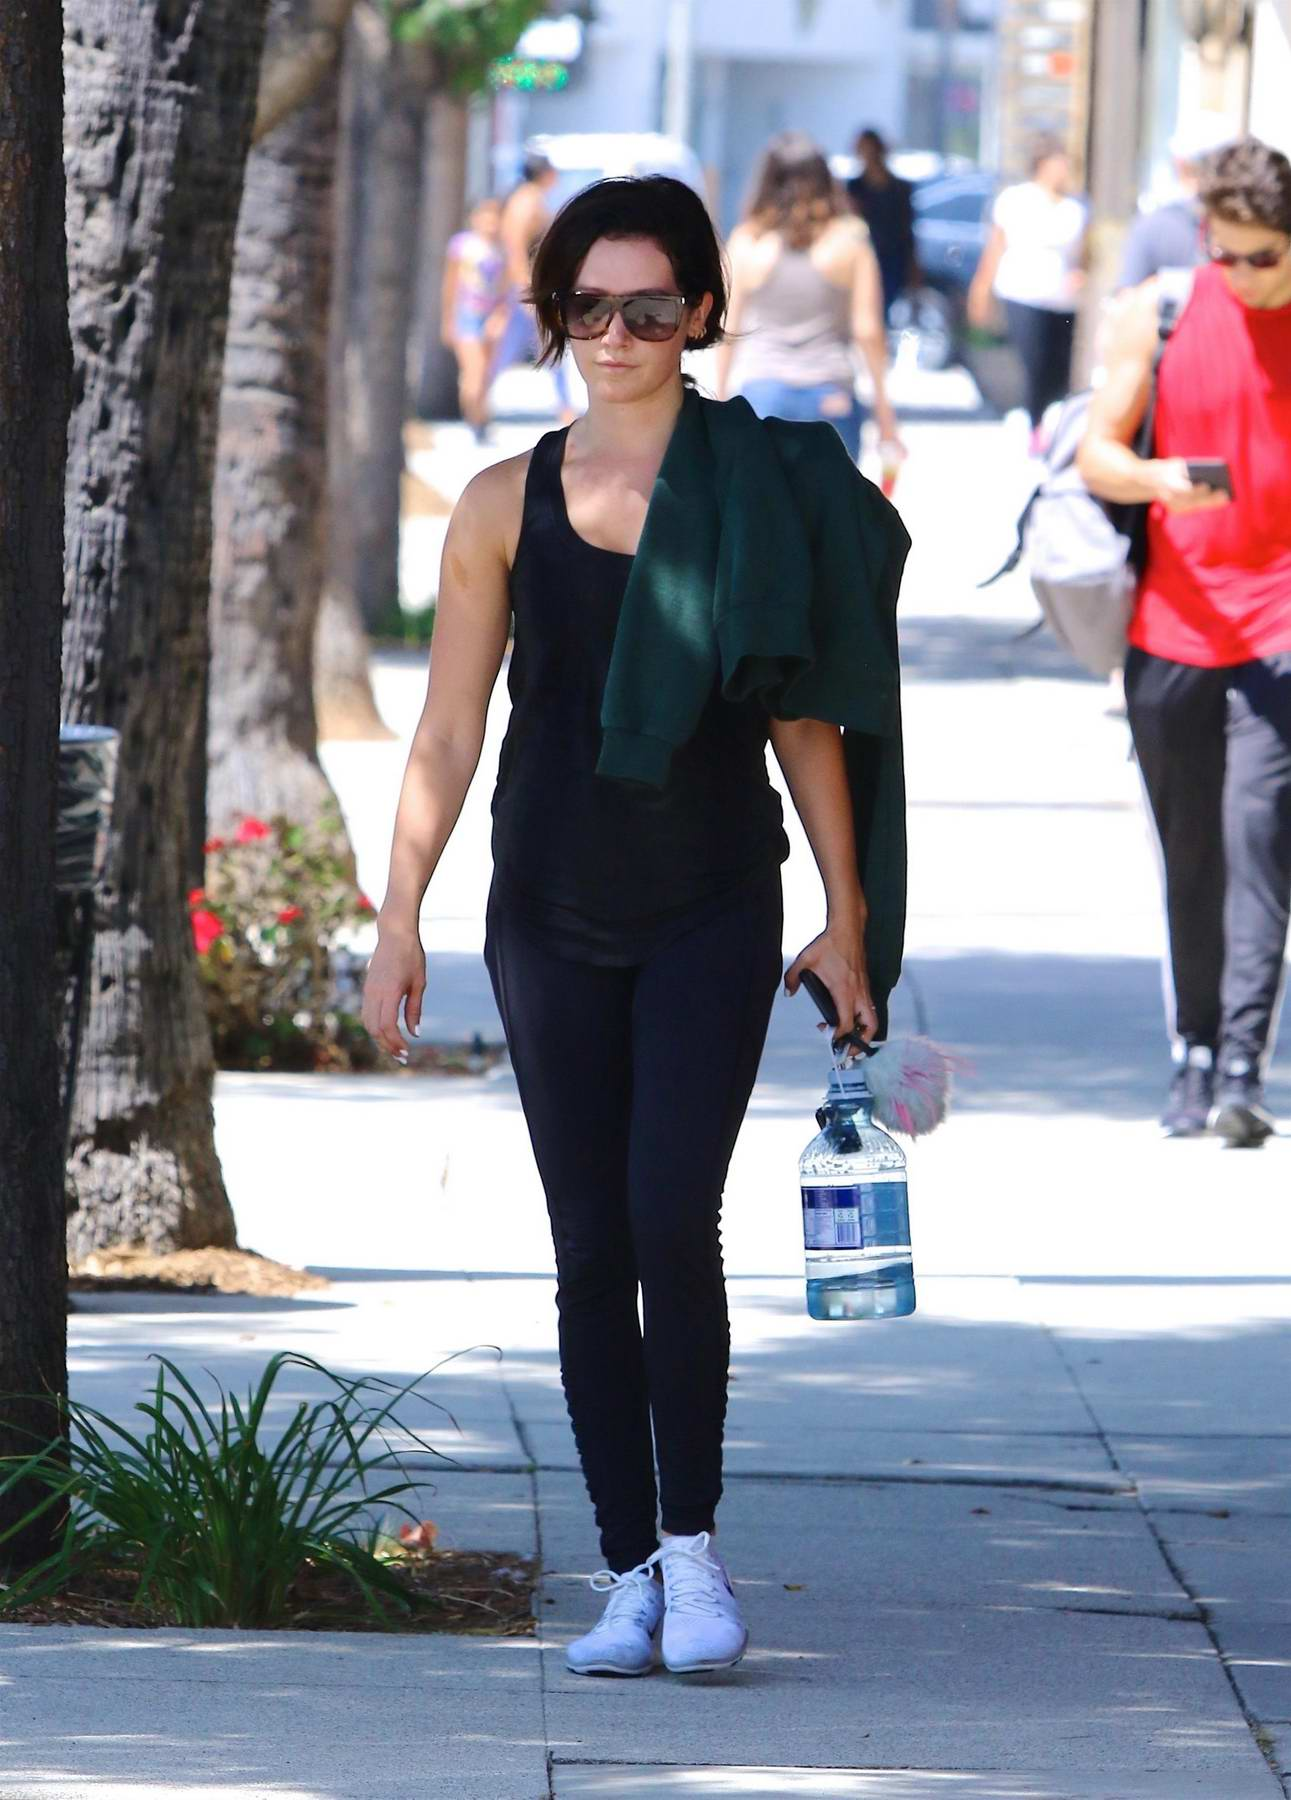 Ashley Tisdale leaving gym after a workout session in Studio City, Los Angeles